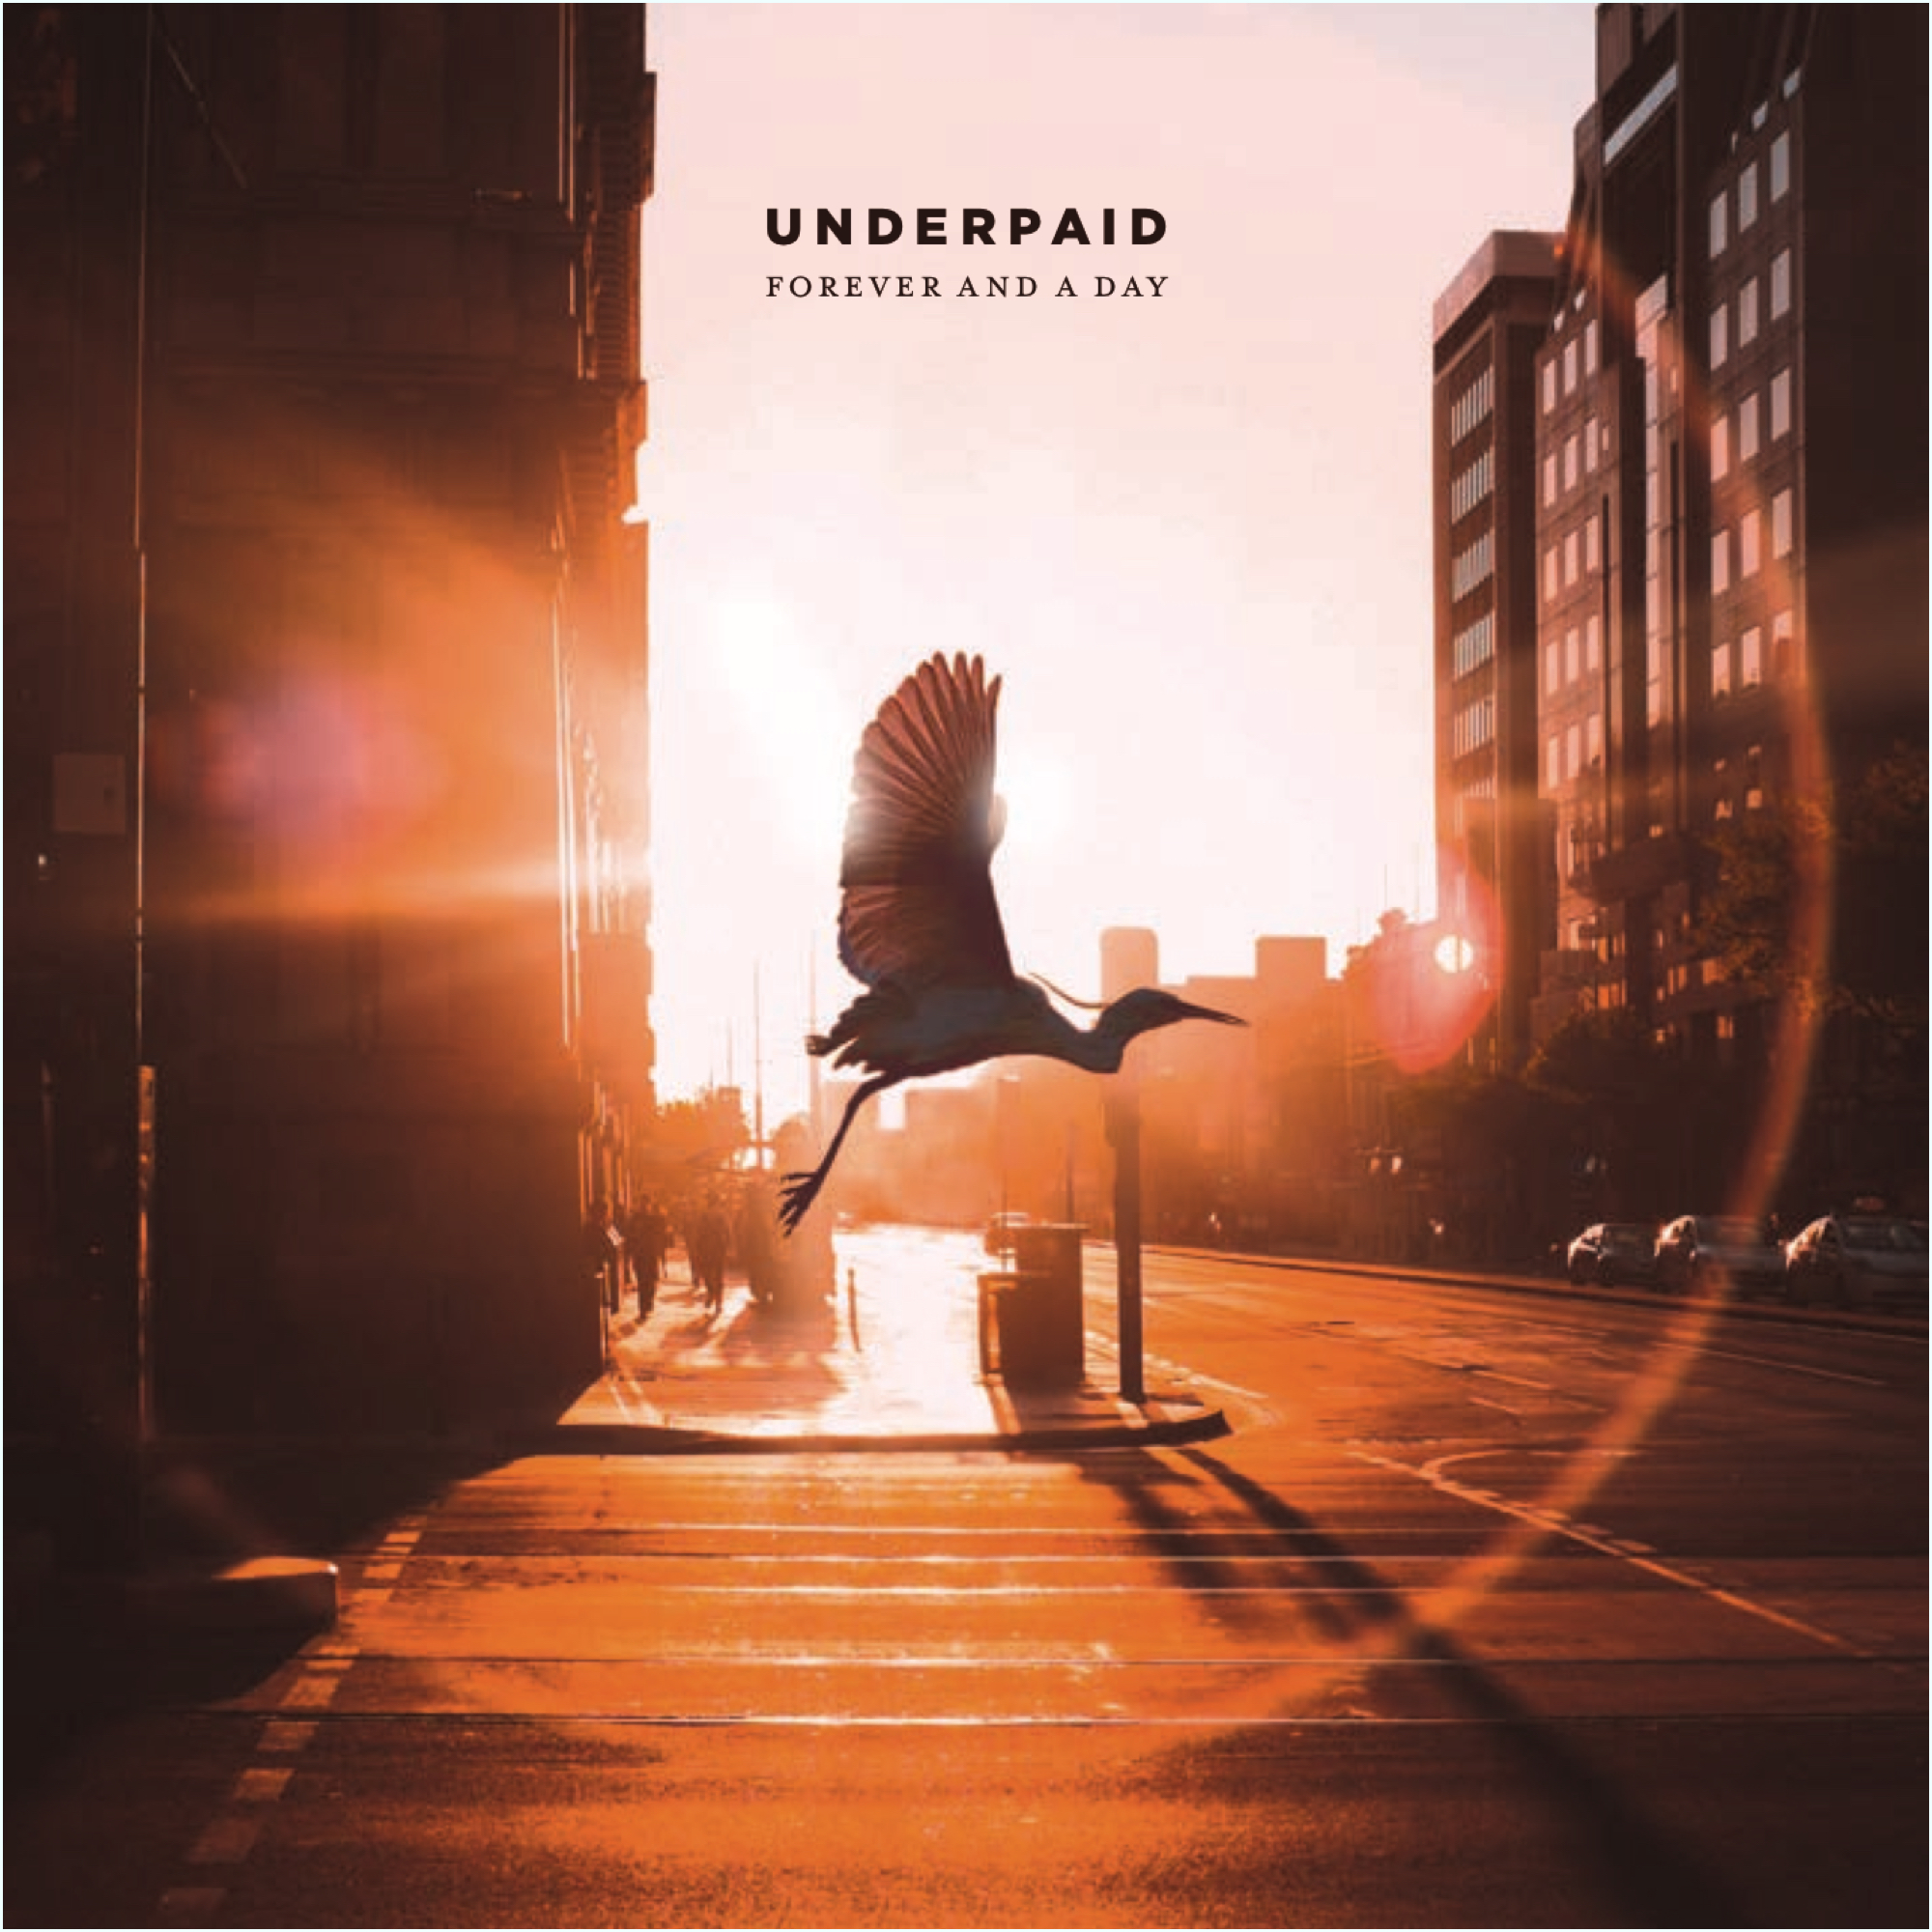 Underpaid - Forever And A Day